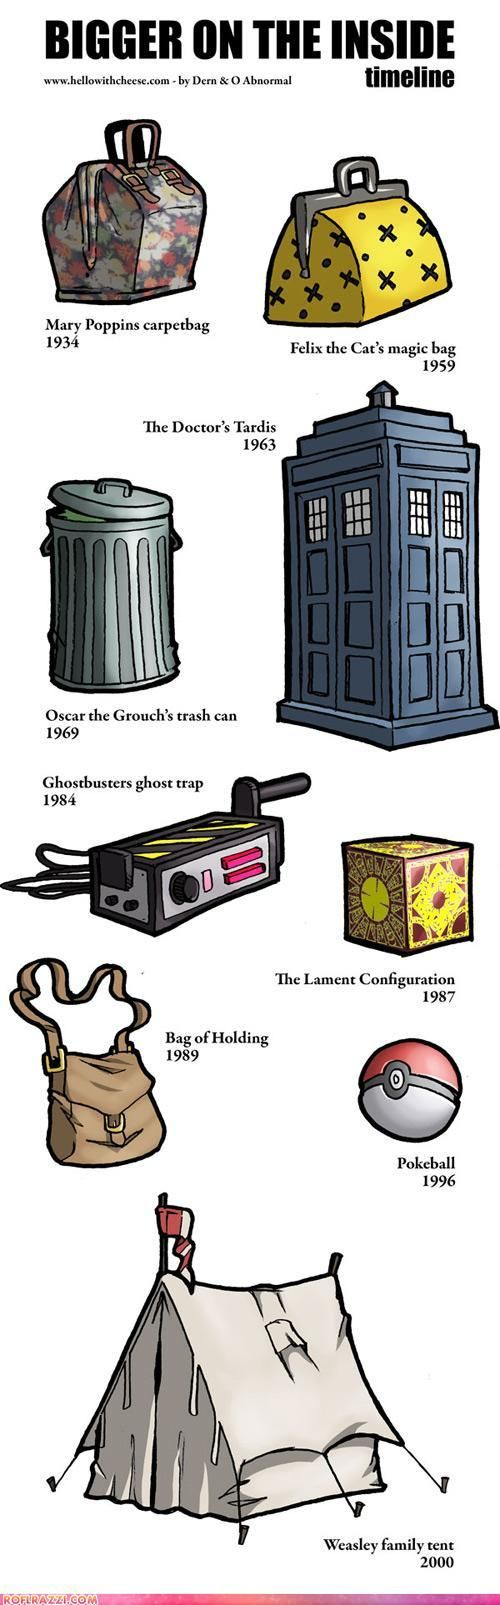 Bigger on the inside: Mary Poppins' carpetbag 1934 ~ Felix the Cat's magic bag 1959 ~ The Doctor's Tardis 1963 ~ Oscar the Grouch's trash can 1969 ~ Ghostbusters' ghost trap 1984 ~ The Lament Configuration 1987 ~ Bag of Holding 1989 ~ Pokeball 1996 ~ Weasley family tent 2000